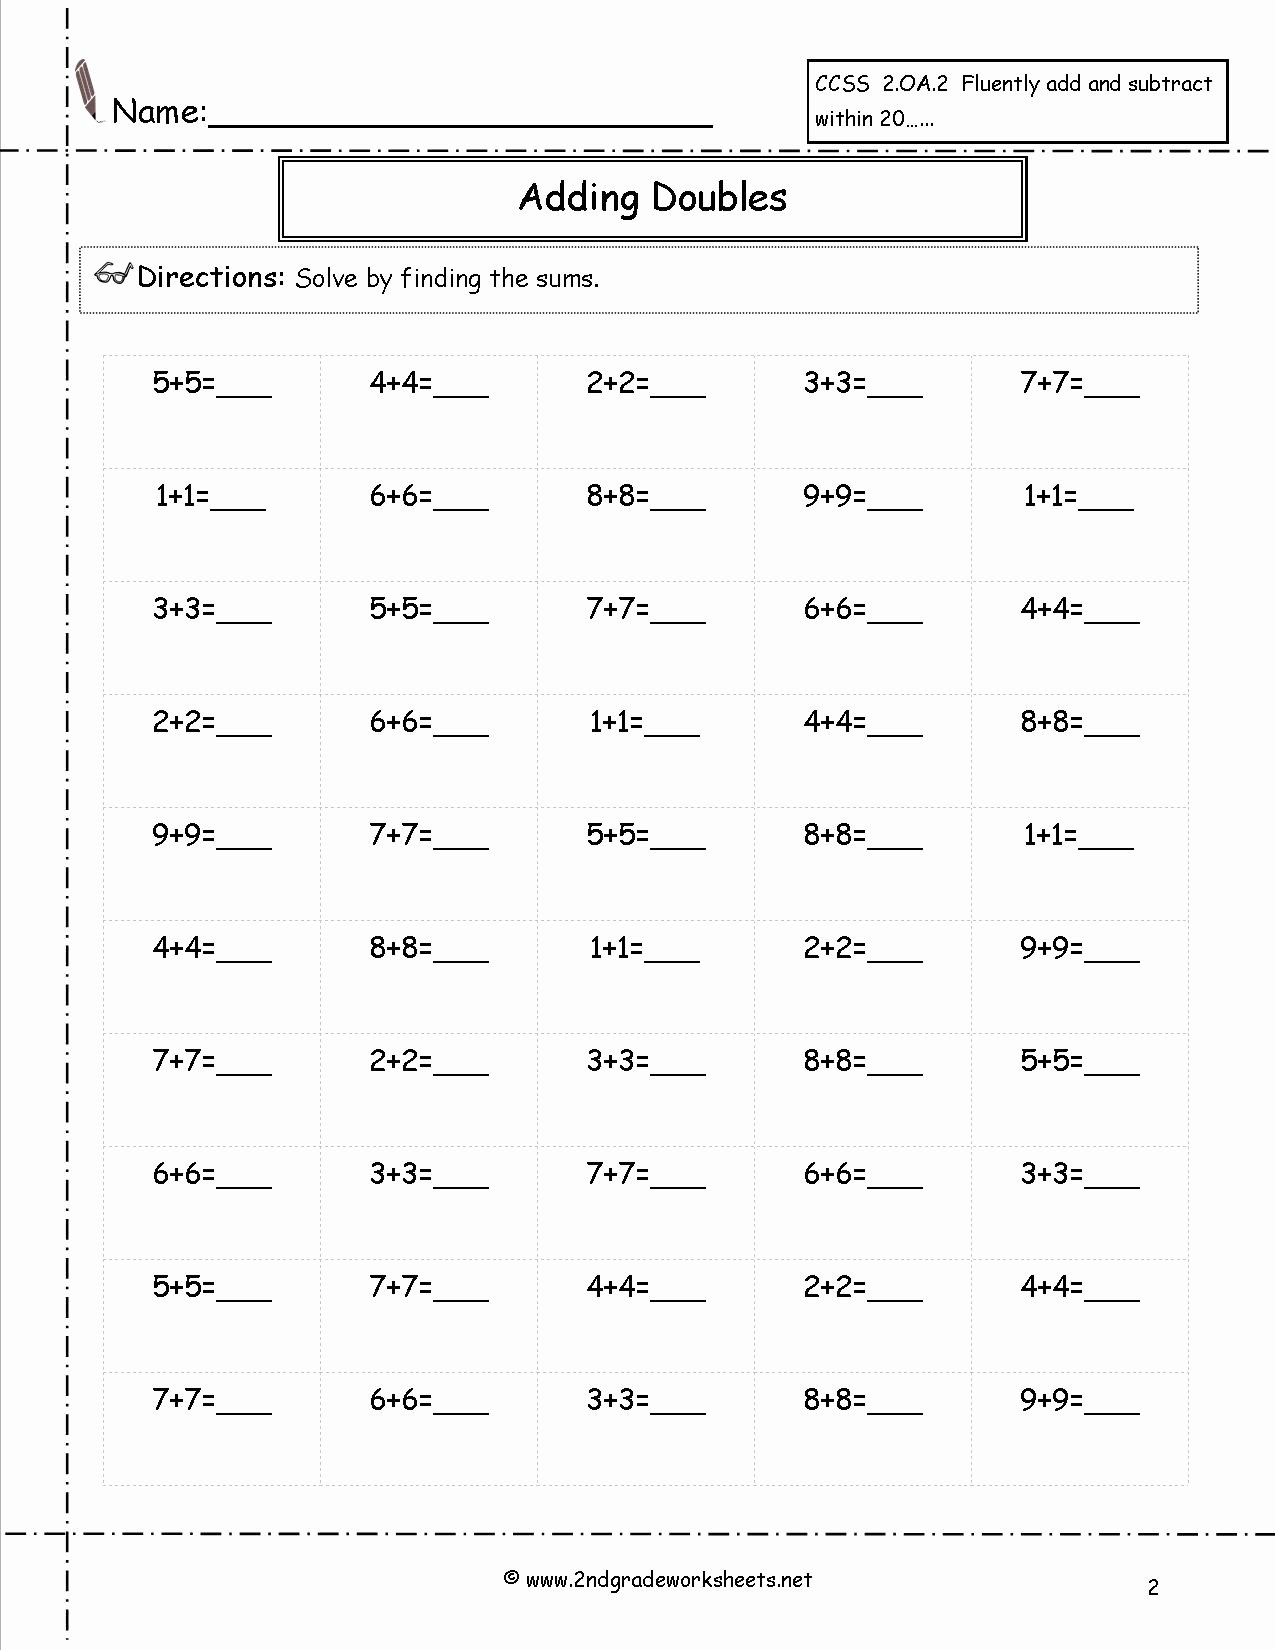 Multiplication Worksheets Grade 2 Printable Fresh Math Worksheet Halloween Math Printables for Secondde Fun